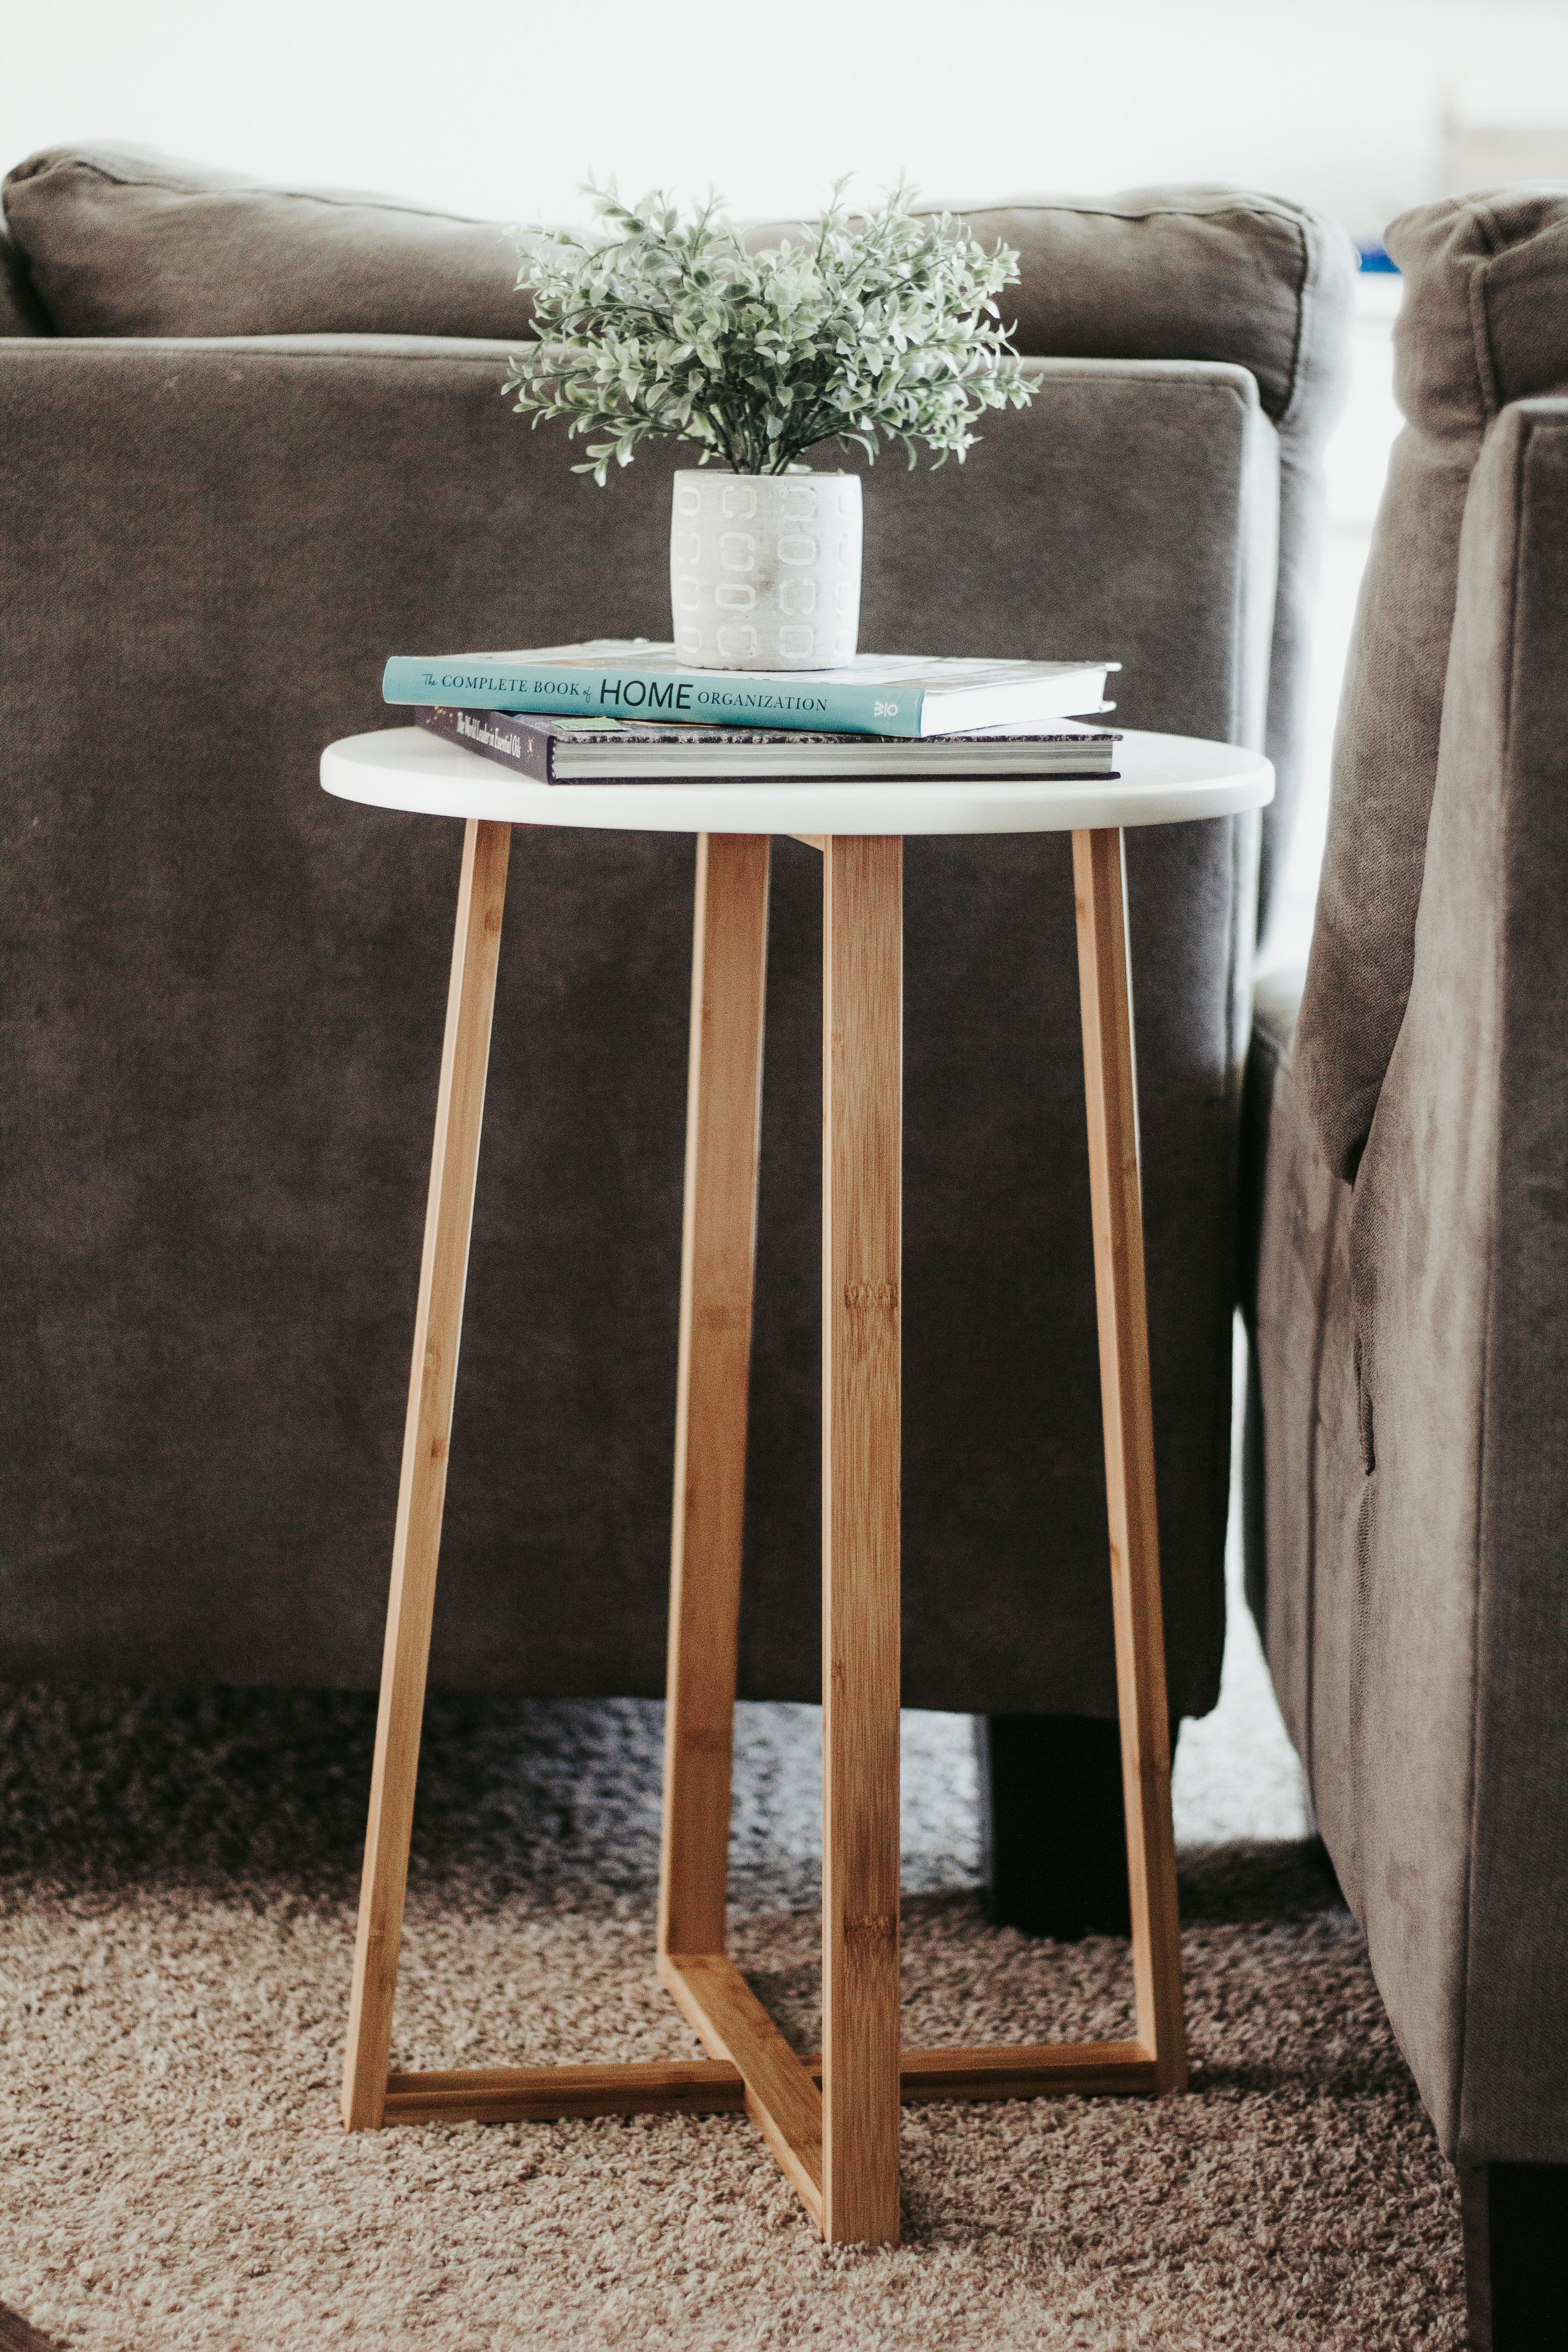 Home Decor From Amazon That I Love In 2020 Table Decor Living Room Side Table Decor Living Room Side Table [ 5184 x 3456 Pixel ]